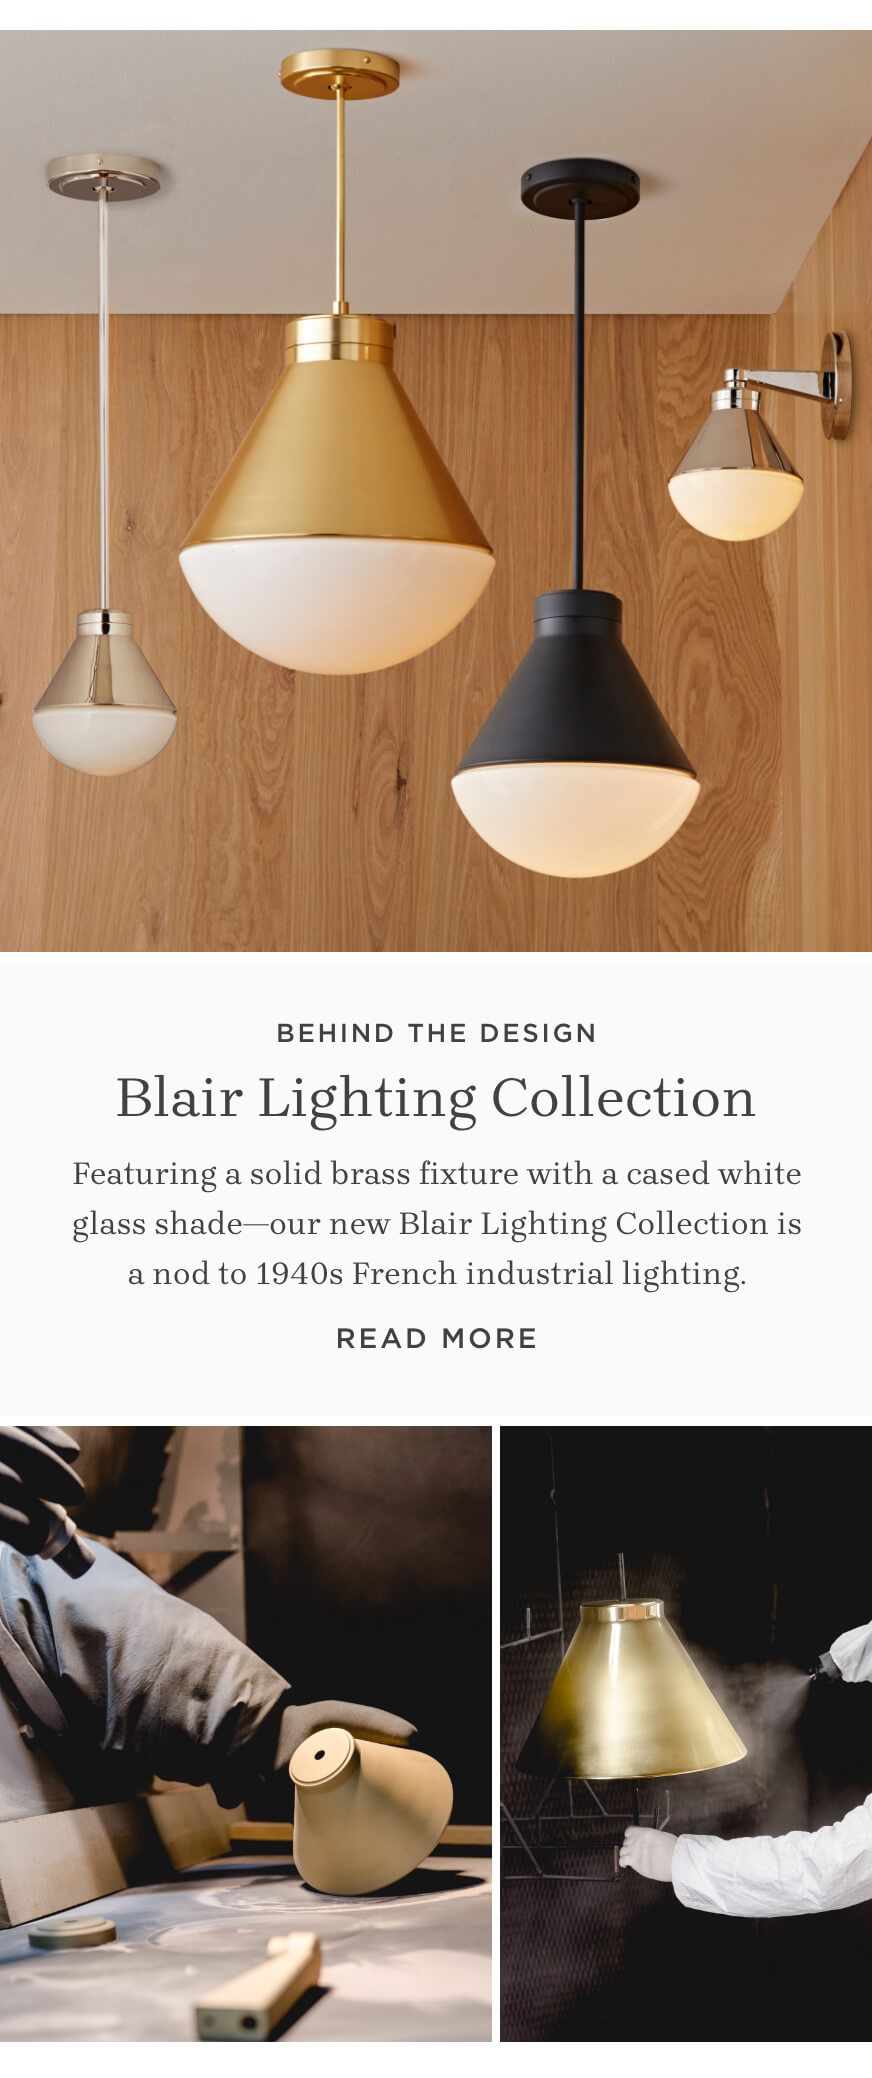 Behind the Design: Blair Lighting Collection